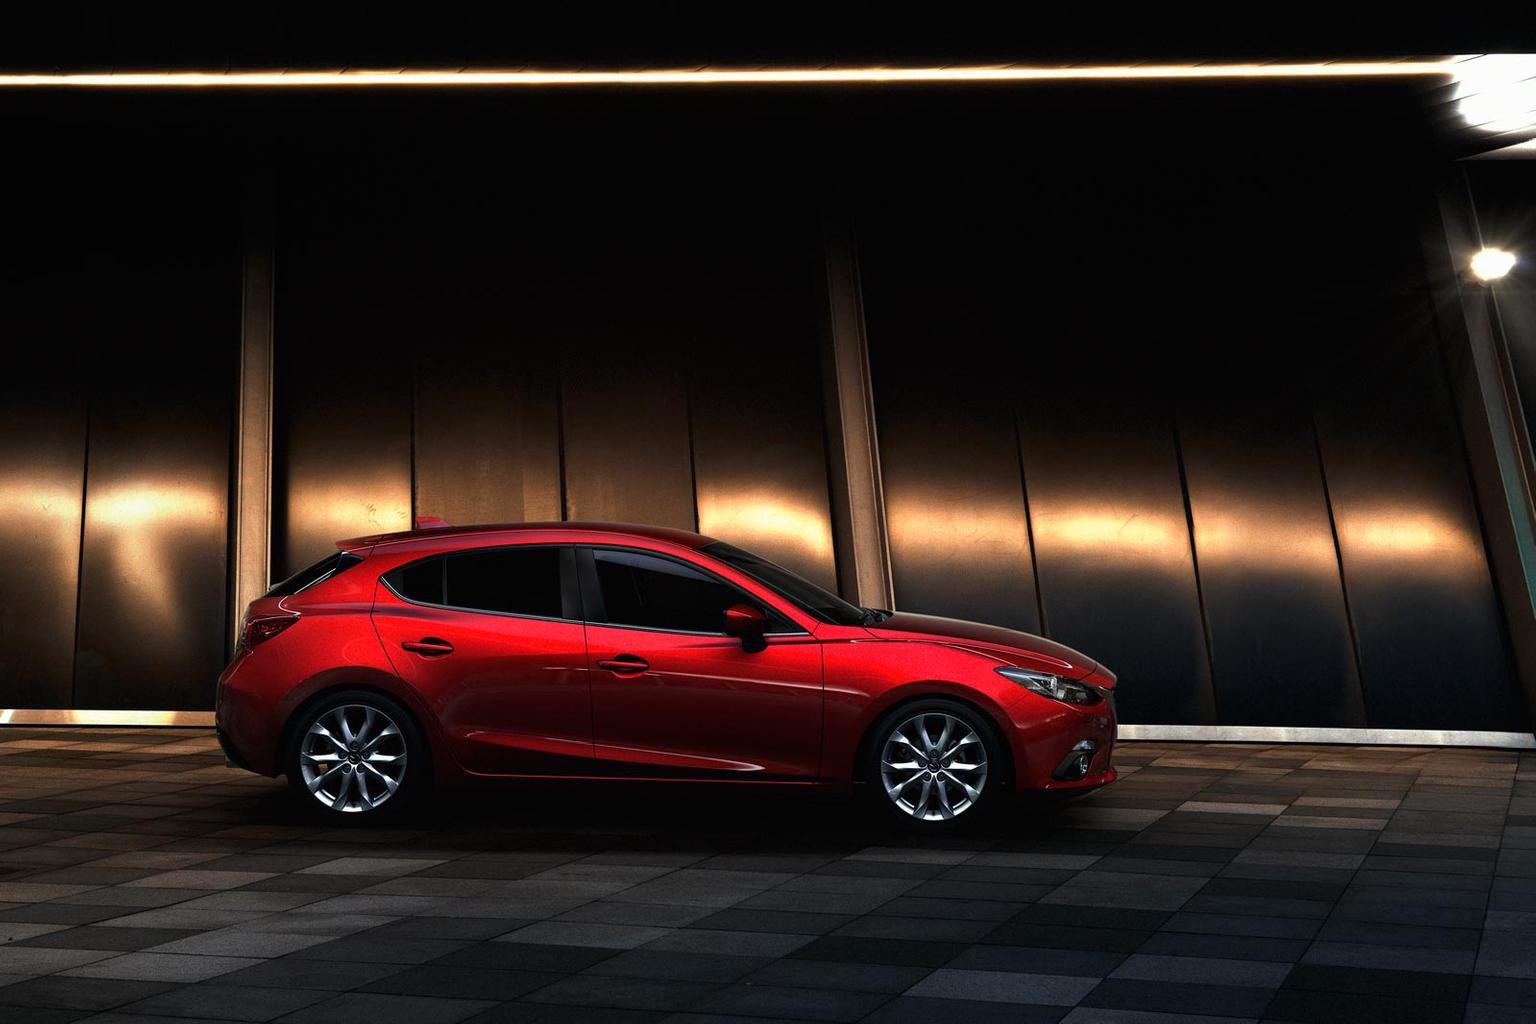 Safe as houses: six ways the all-new Mazda3 protects you and your family